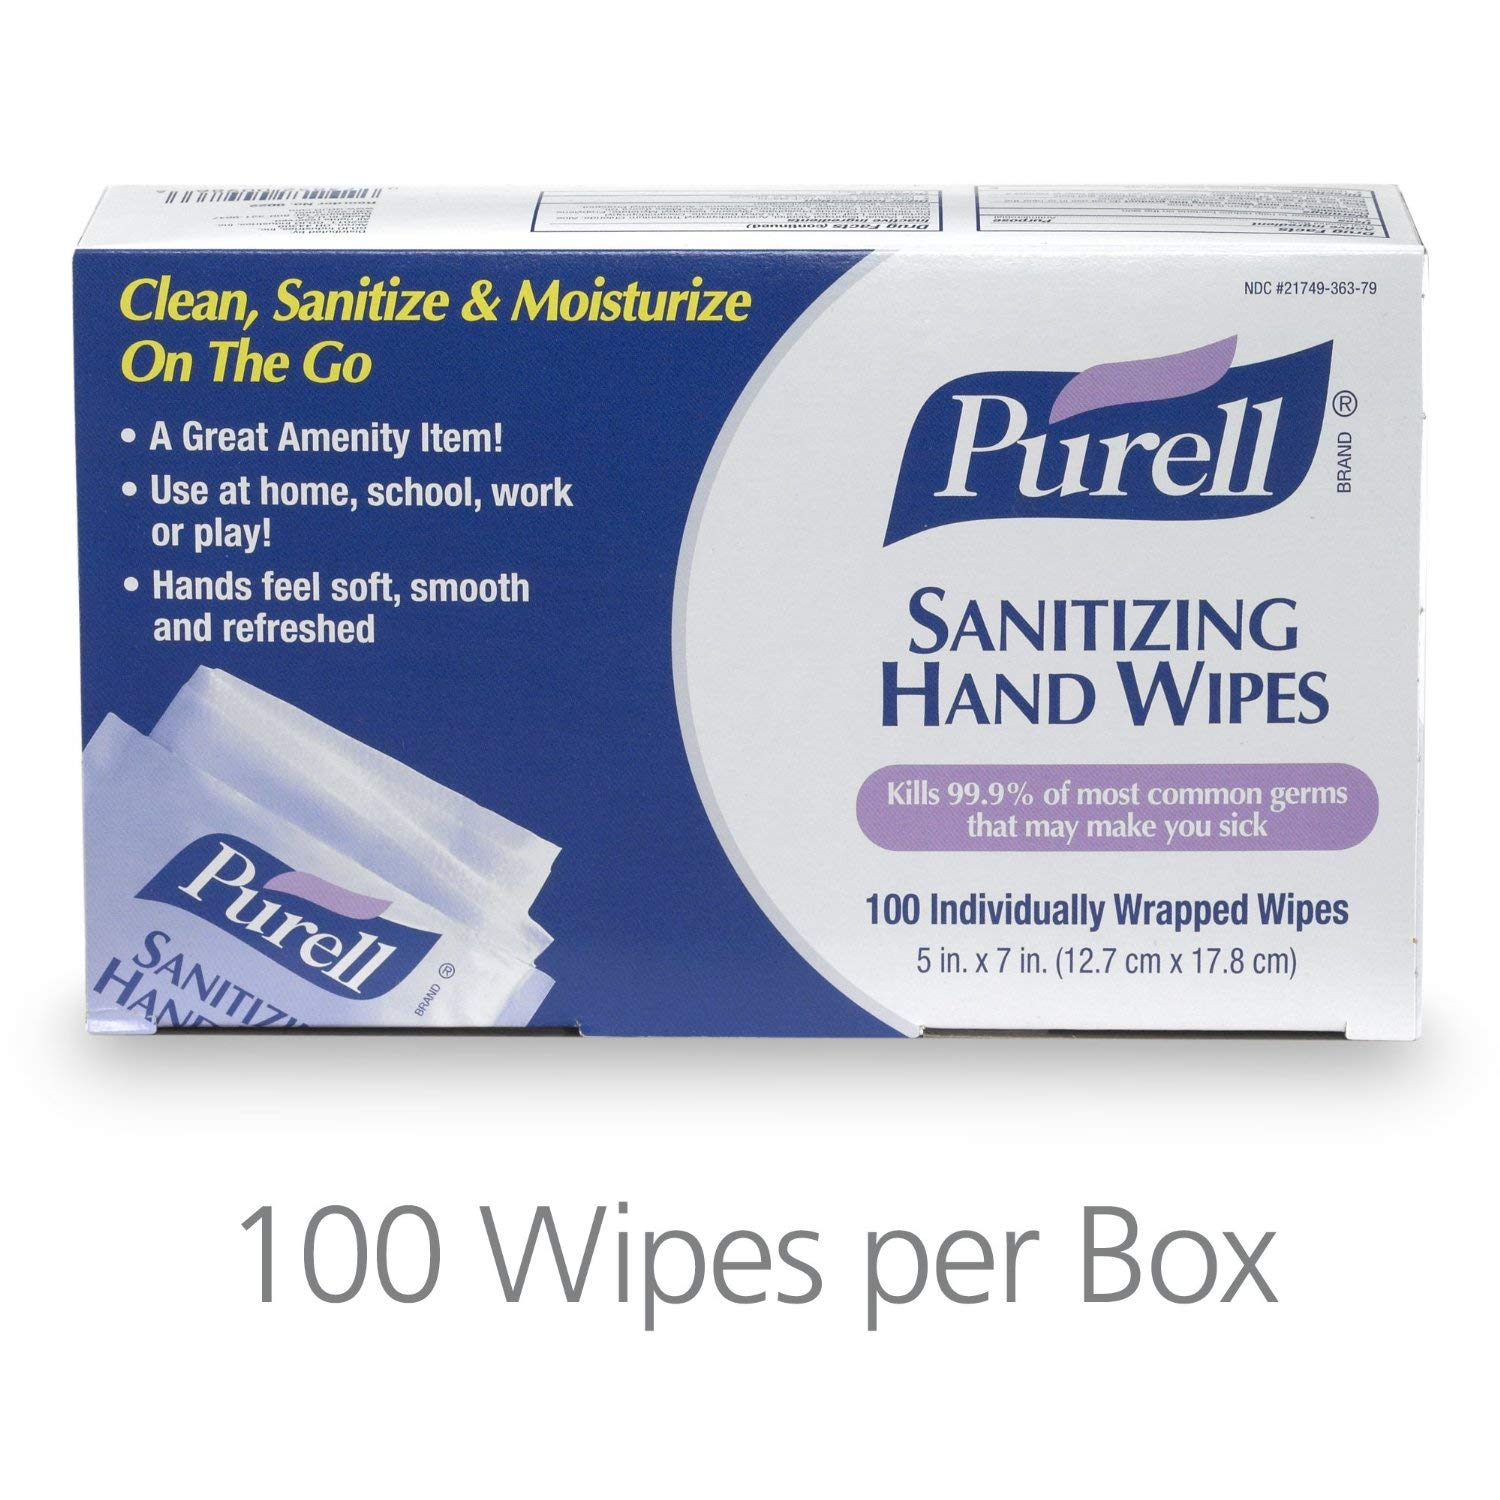 PURELL 902210CT Sanitizing Hand Wipes, 5w x 7l, Individually Wrapped, Box of 100 (Case of 10 Boxes)